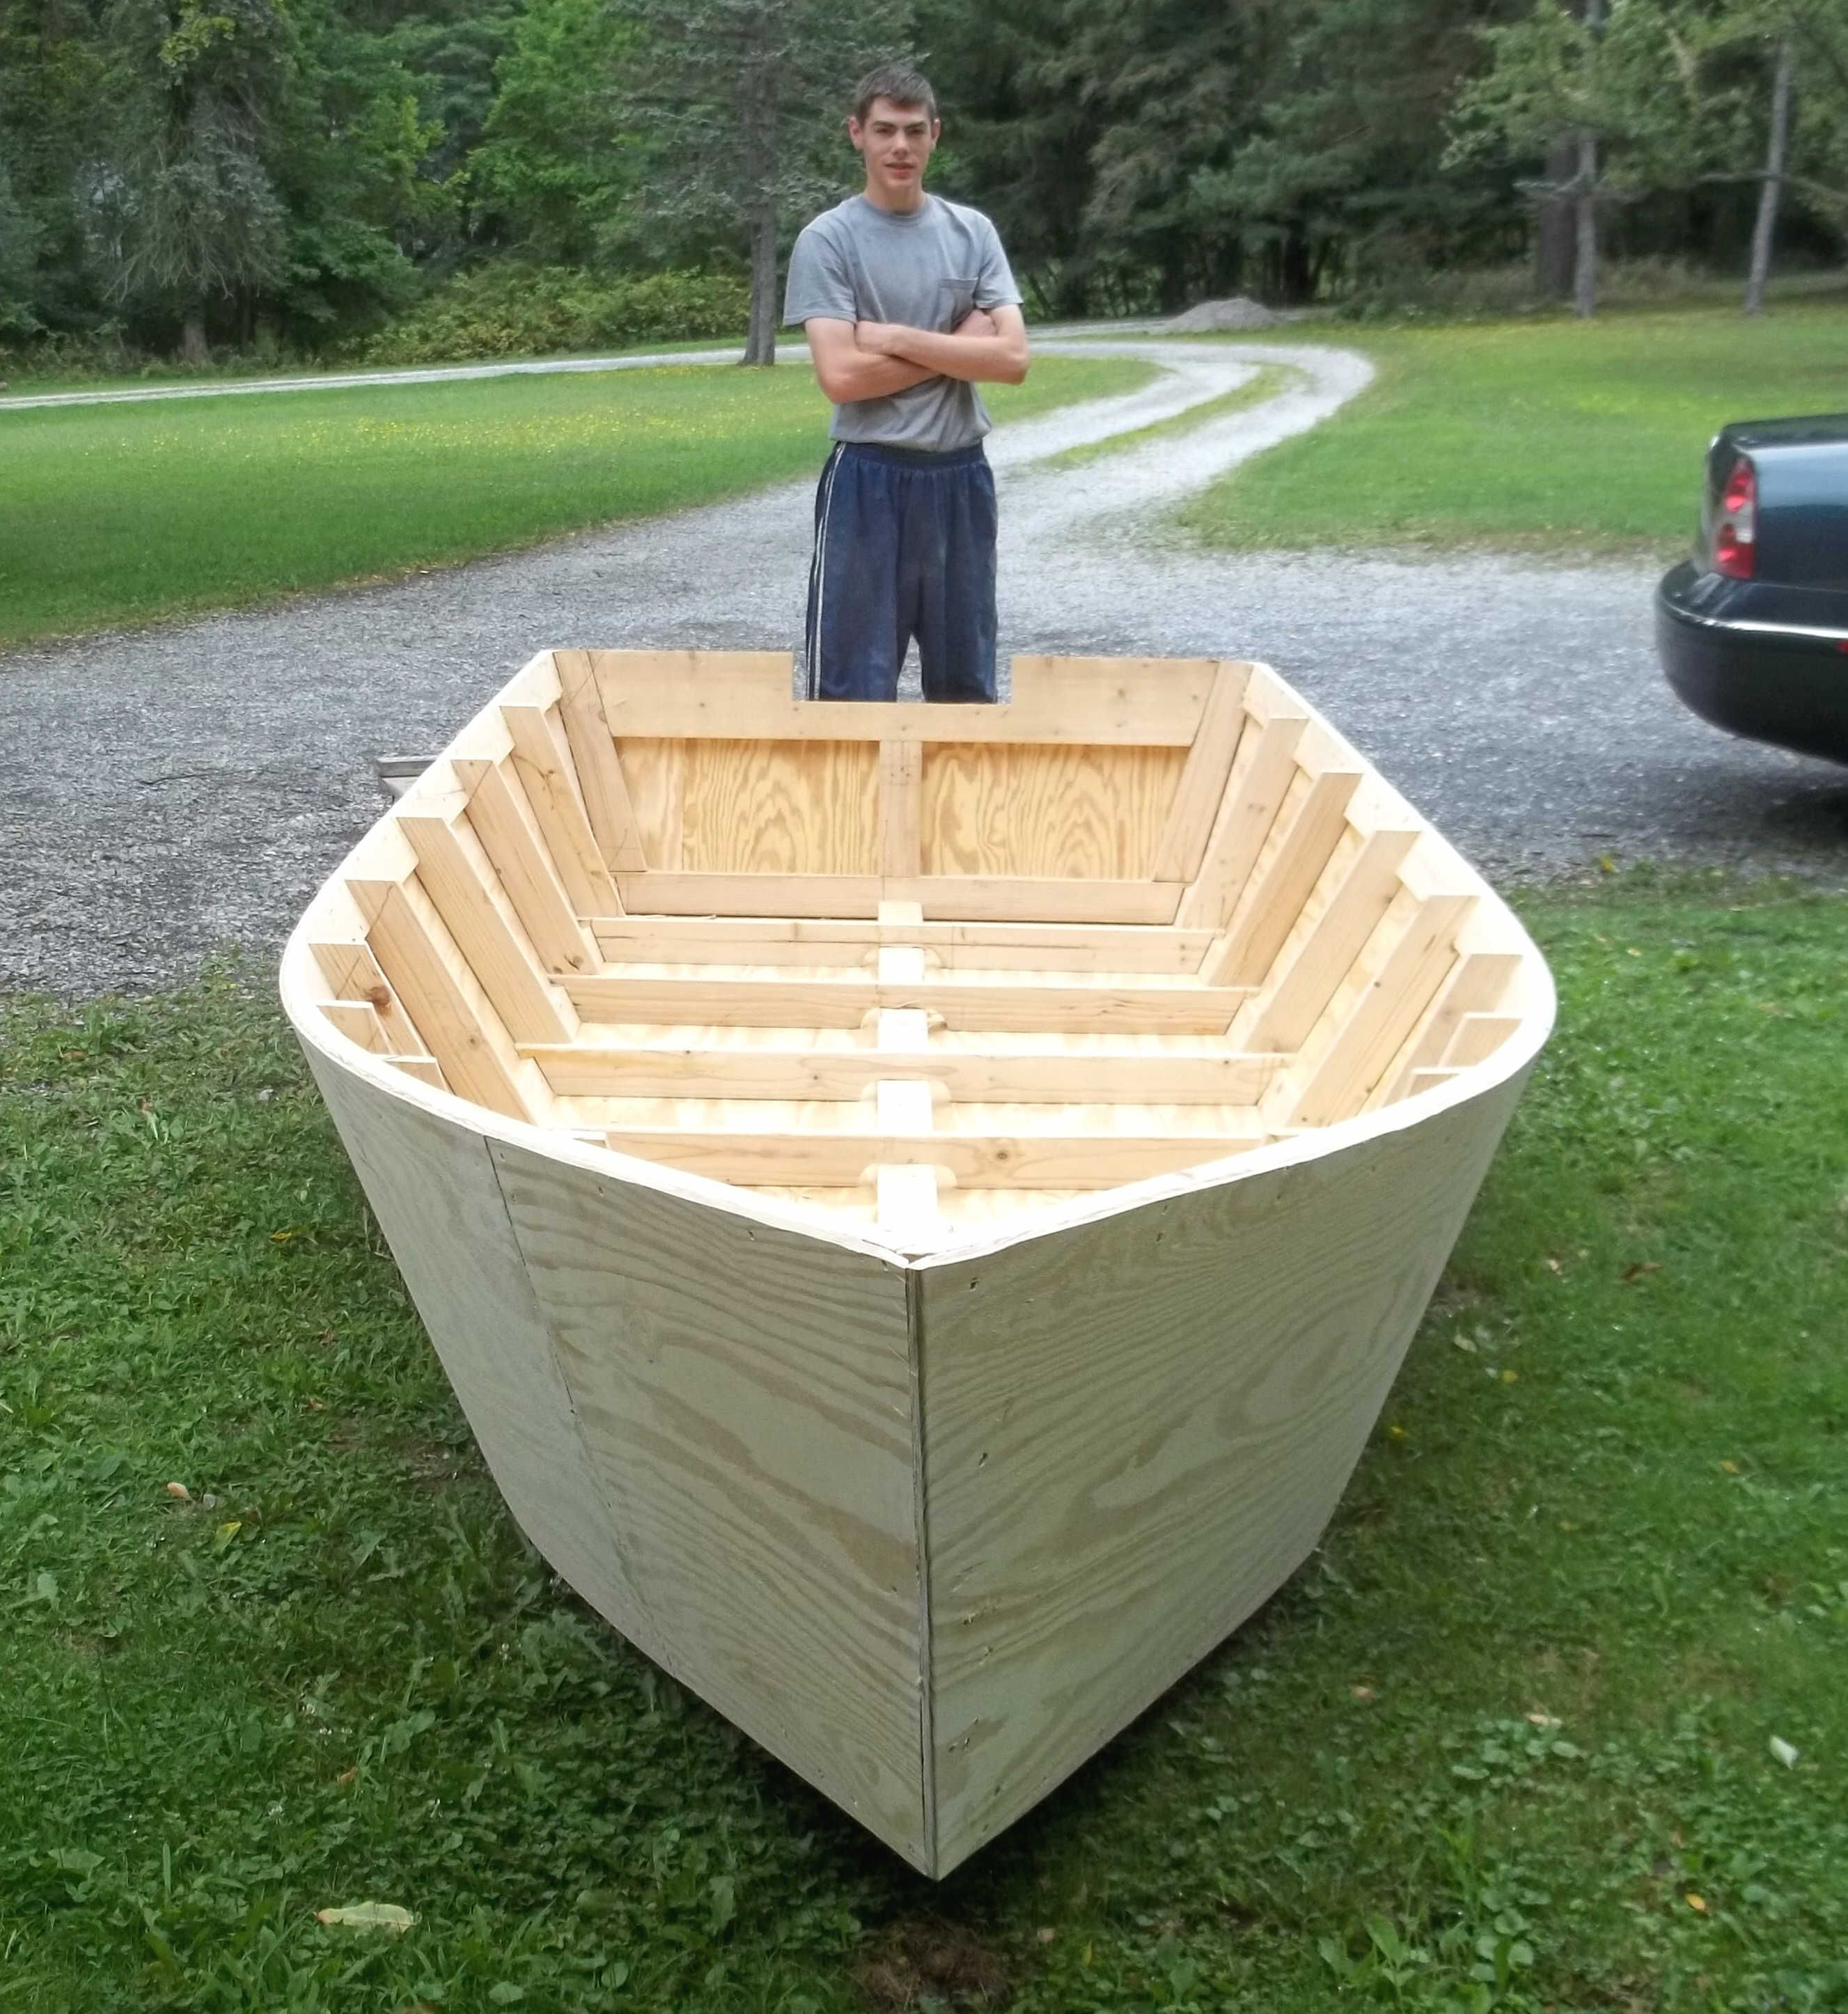 Best ideas about DIY Boat Plans . Save or Pin Best 25 Boat plans ideas on Pinterest Now.